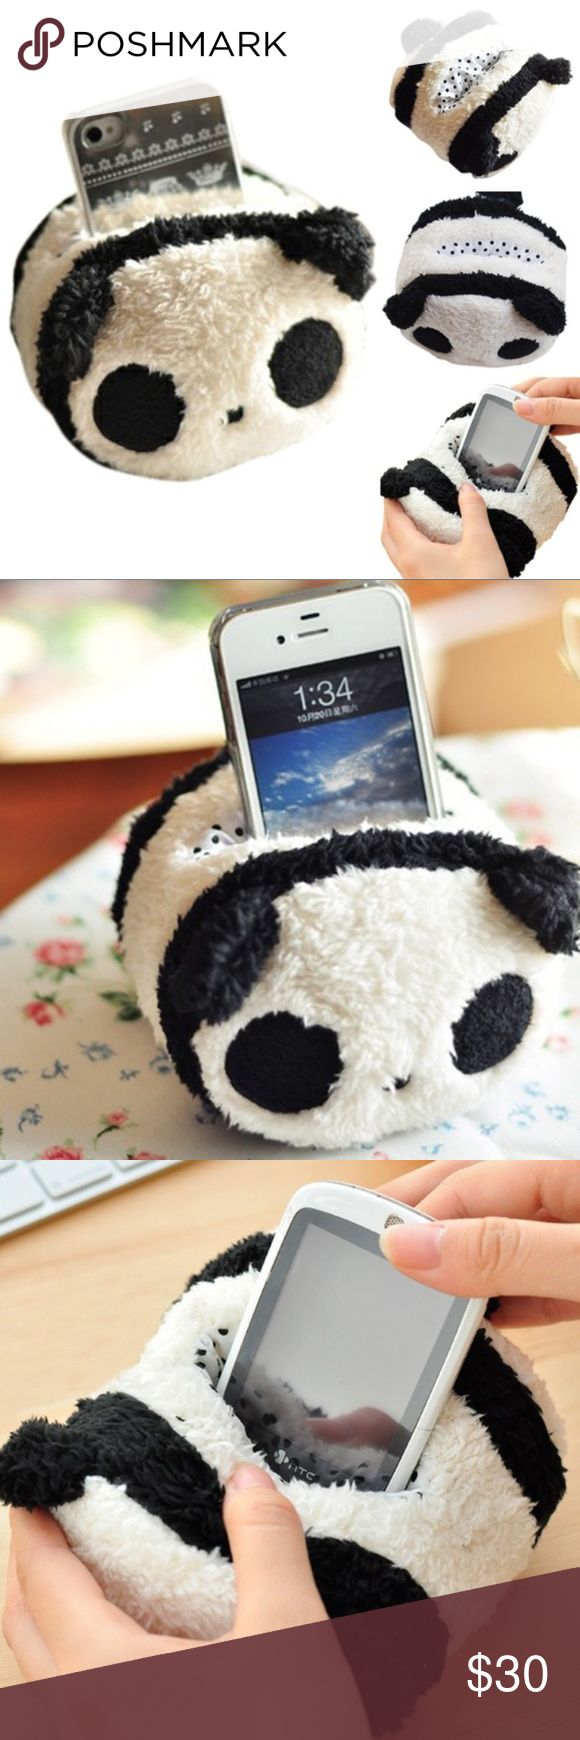 """JUST IN! NEW! 🐼 Panda Plush Cell Phone Holder Super Cute 🐼 Panda Plush Cell Phone Holder & Stand. Cute design, soft & fluffy, and protects your phone! Put on table, bed, or any other place as decoration. Makes a perfect gift! 100% Brand New & Good Quality. BUNDLE & SAVE!  Approx. Size: 12*11.5*8.5cm/ 4.7""""*4.5""""*3.3""""  Fits Phone Size: Phone width max to 7cm, most of latest phones are available, such as: Samsung S4, iPhone 6s, LG Nexus 5, HTC Desire 500, BlackBerry Z30, etc. Accessories"""